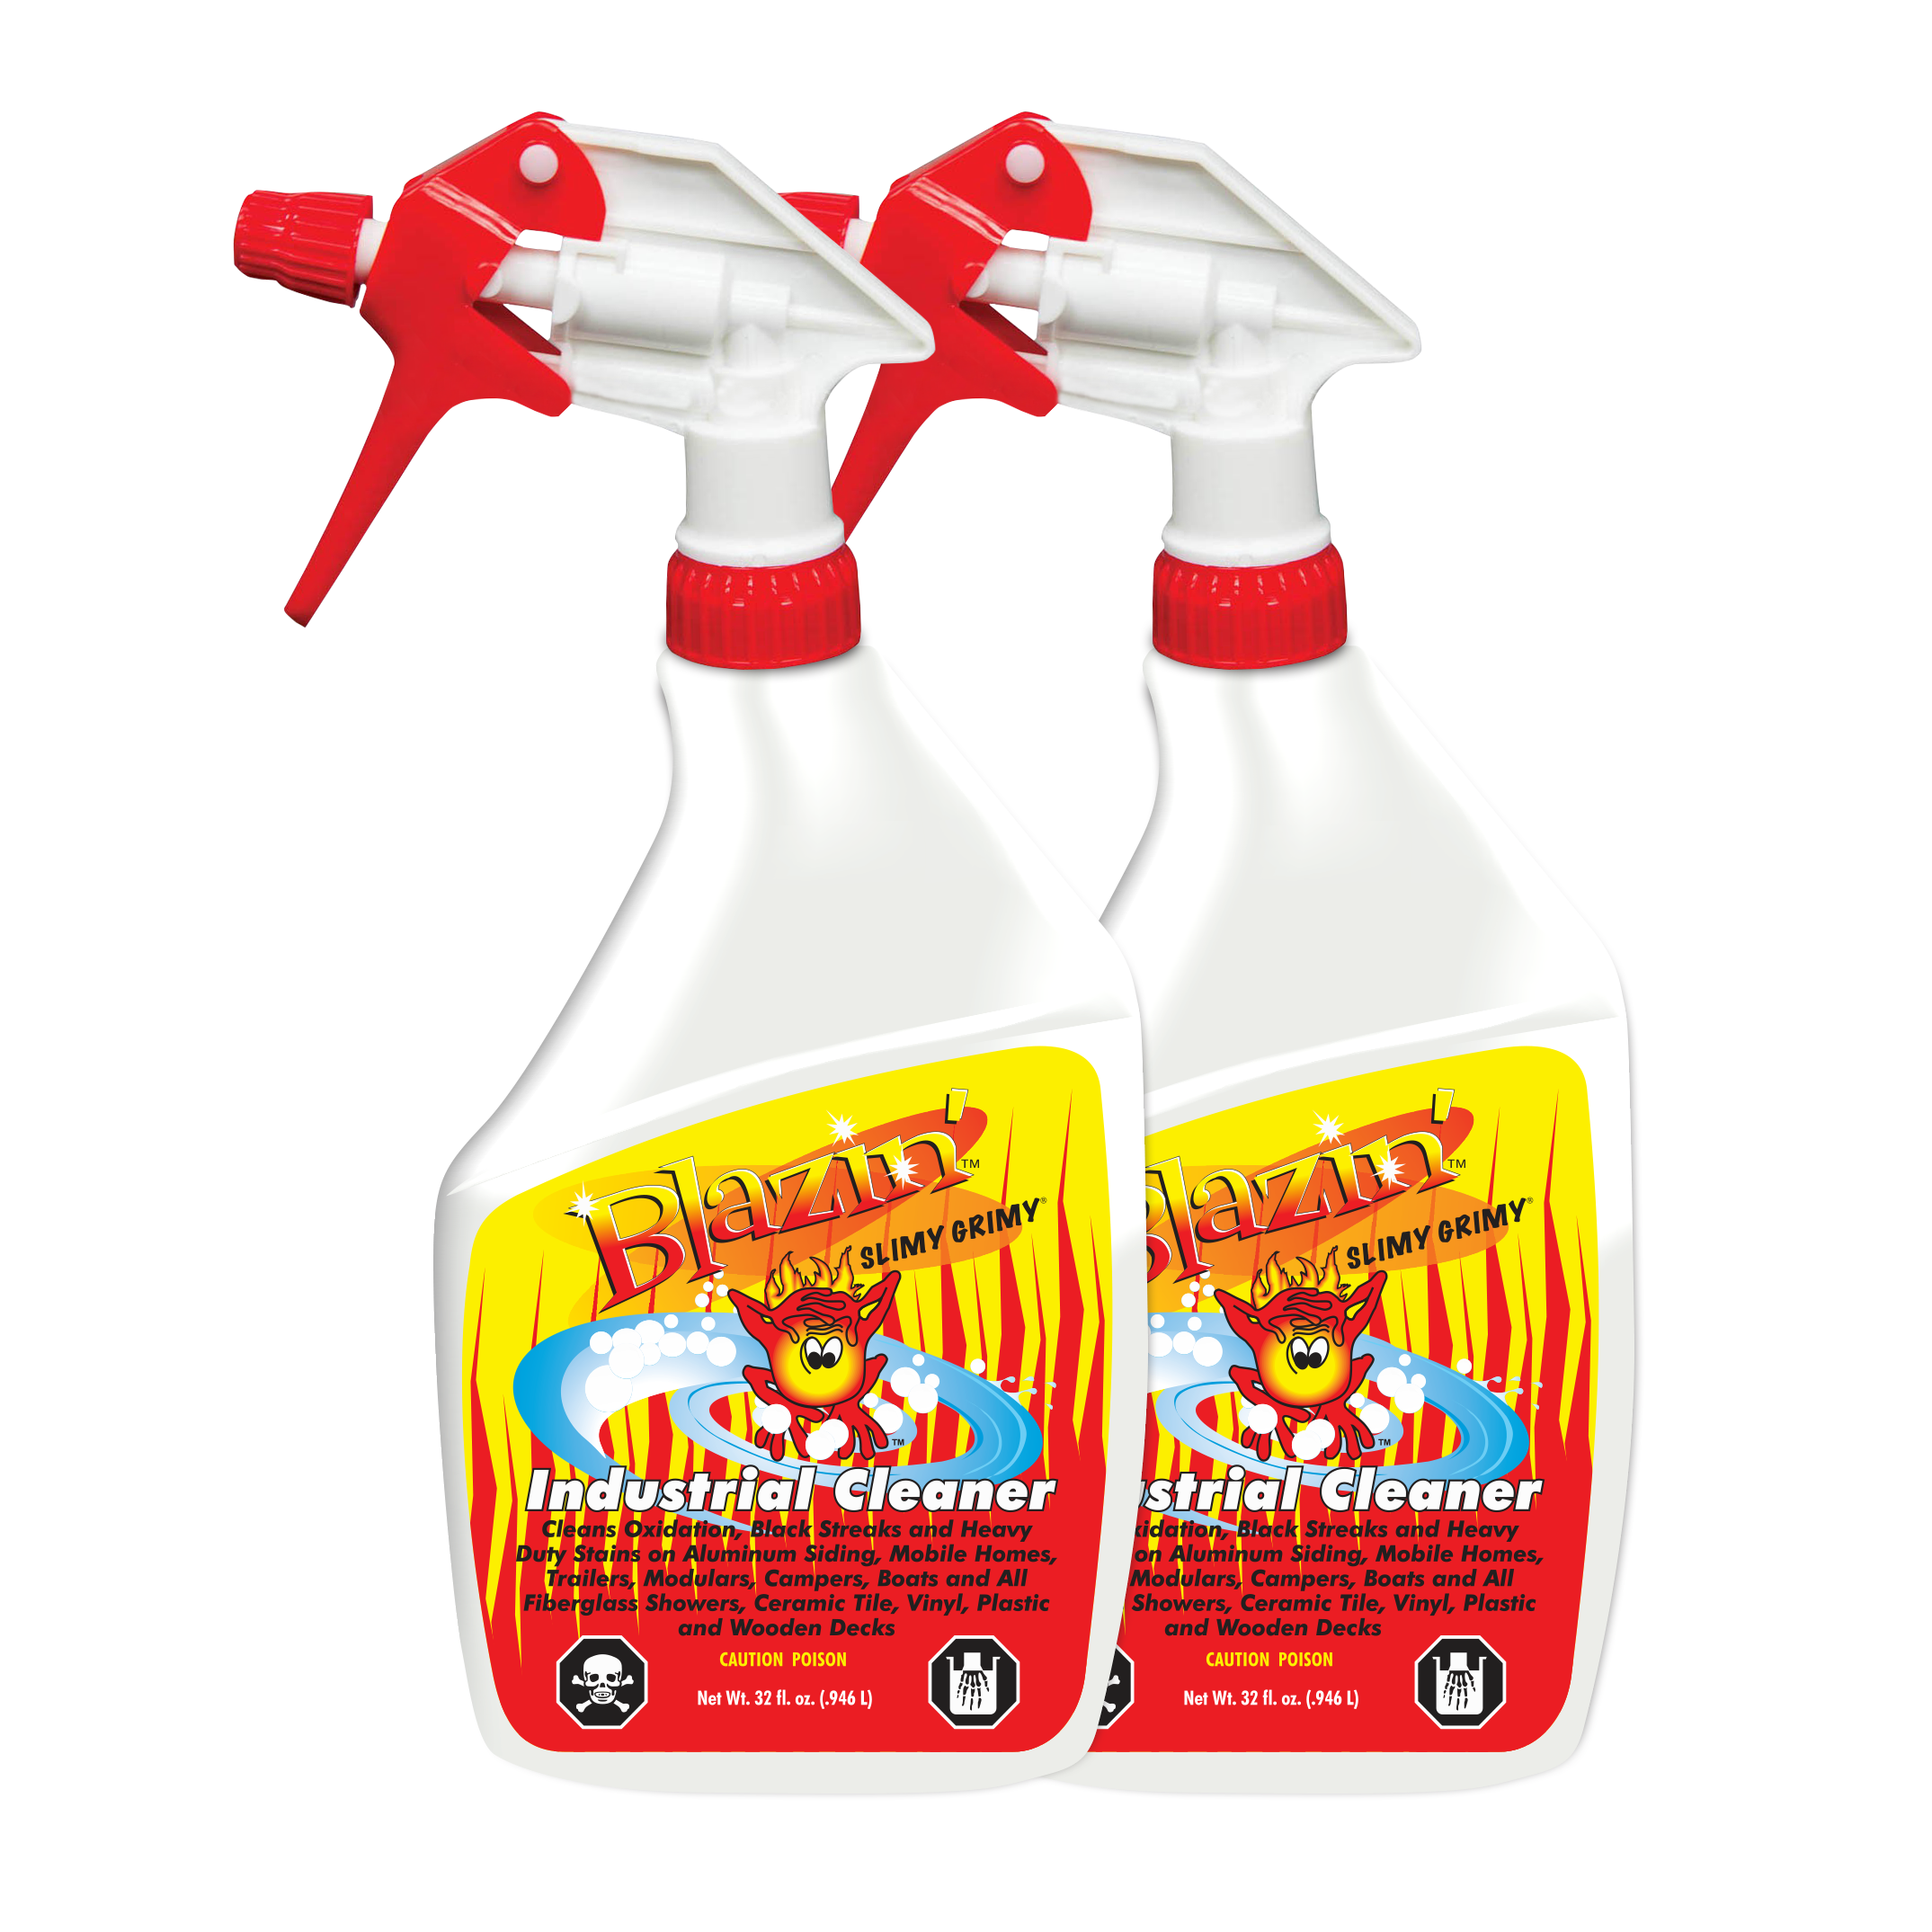 Blazin Industrial Cleaner Remove Oxidation From Aluminum